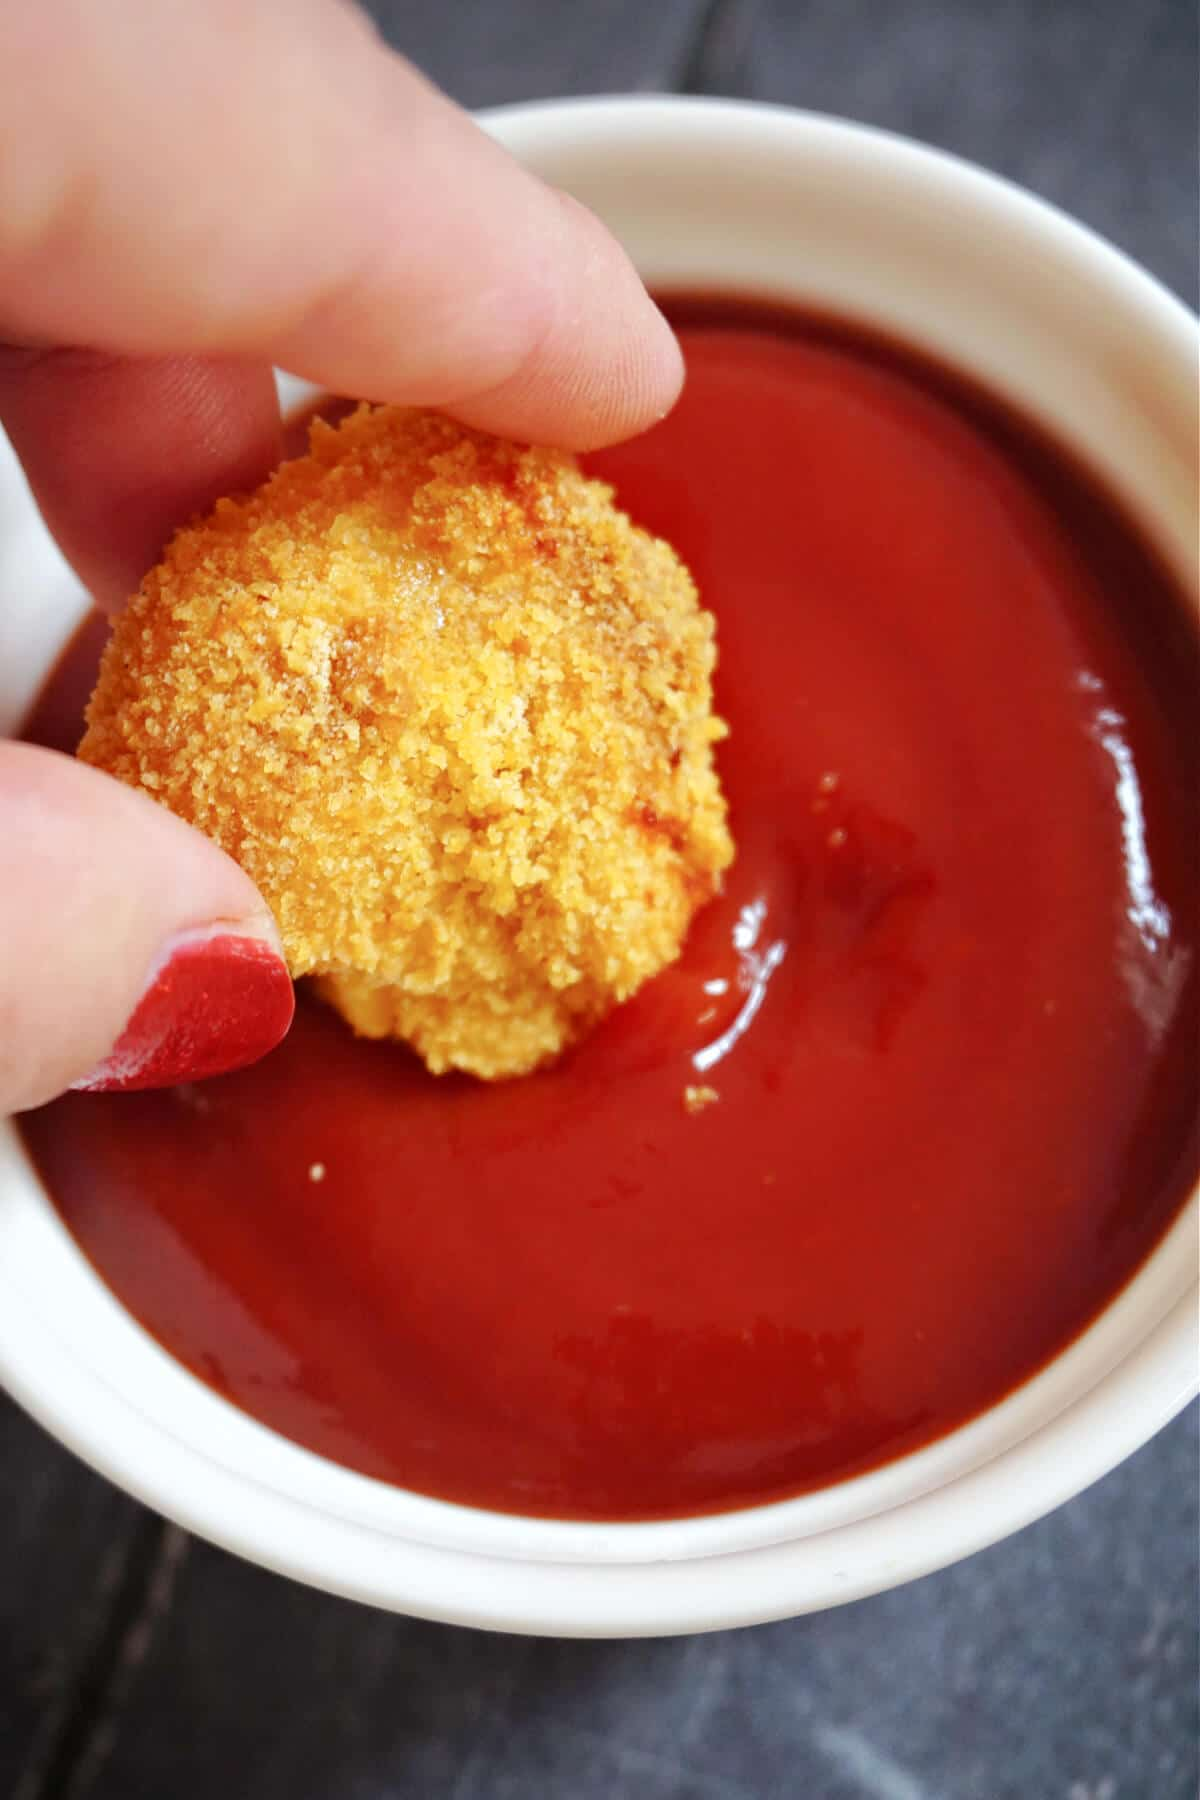 A chicken nugget being dipped in ketchup